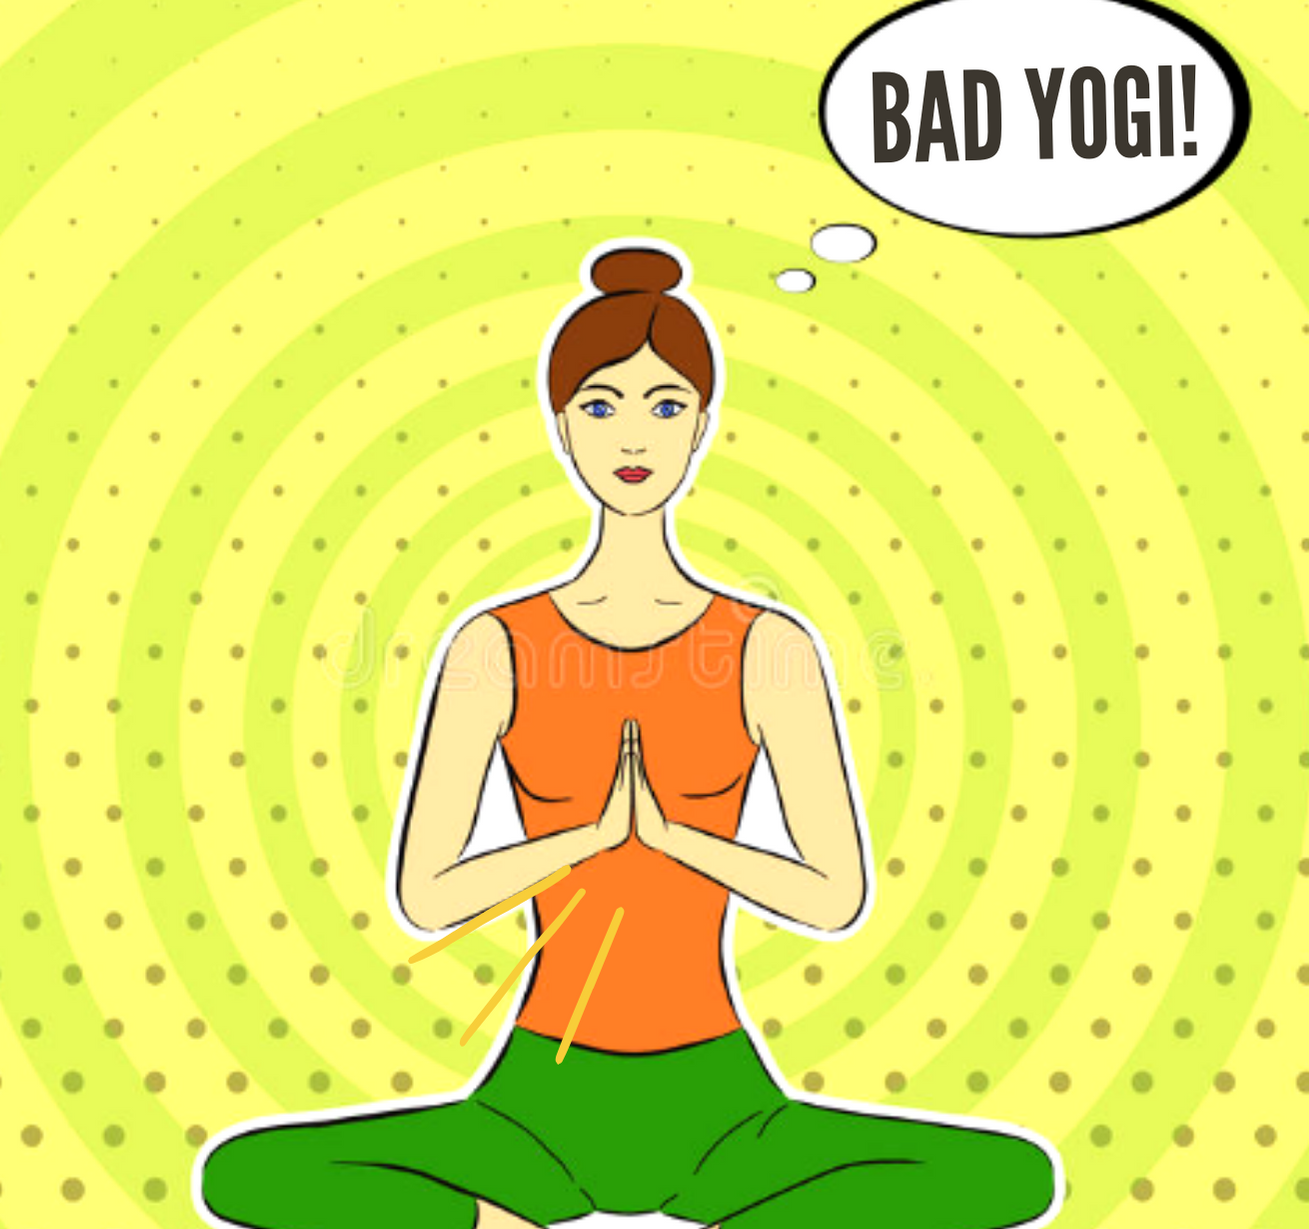 COVID-19 and your un-yogic thoughts